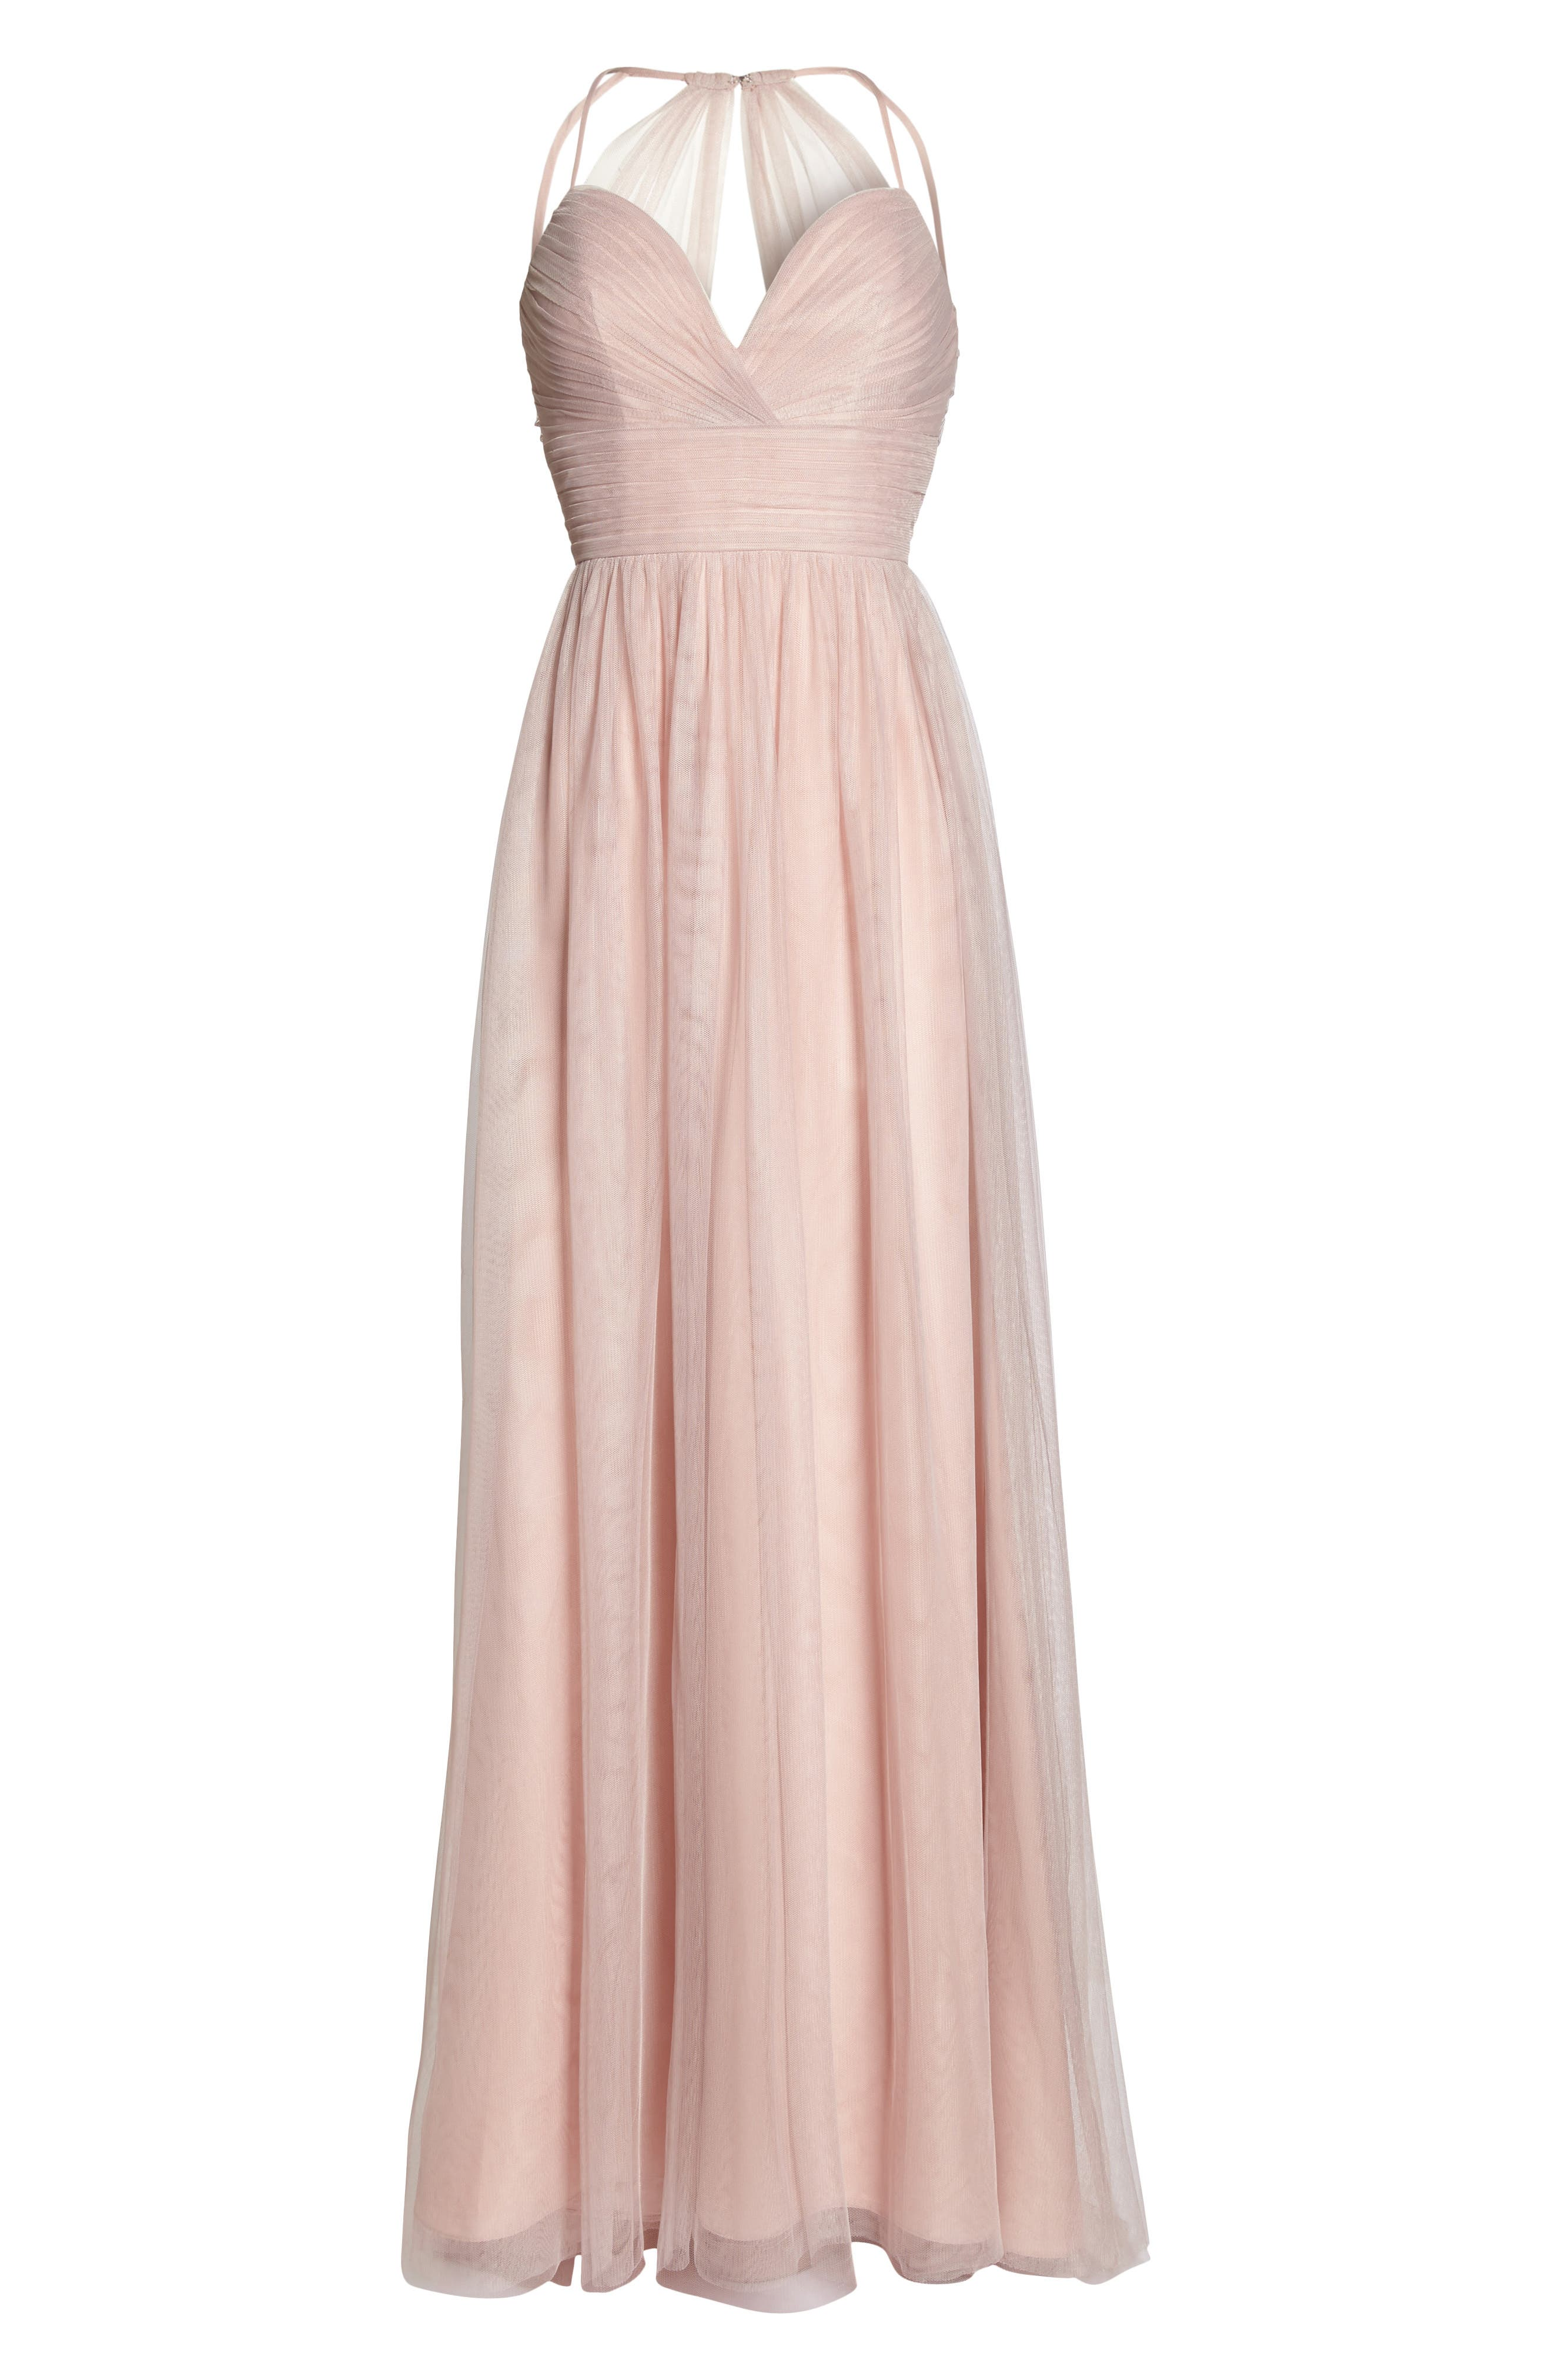 English Net Gown,                             Alternate thumbnail 6, color,                             Dusty Rose